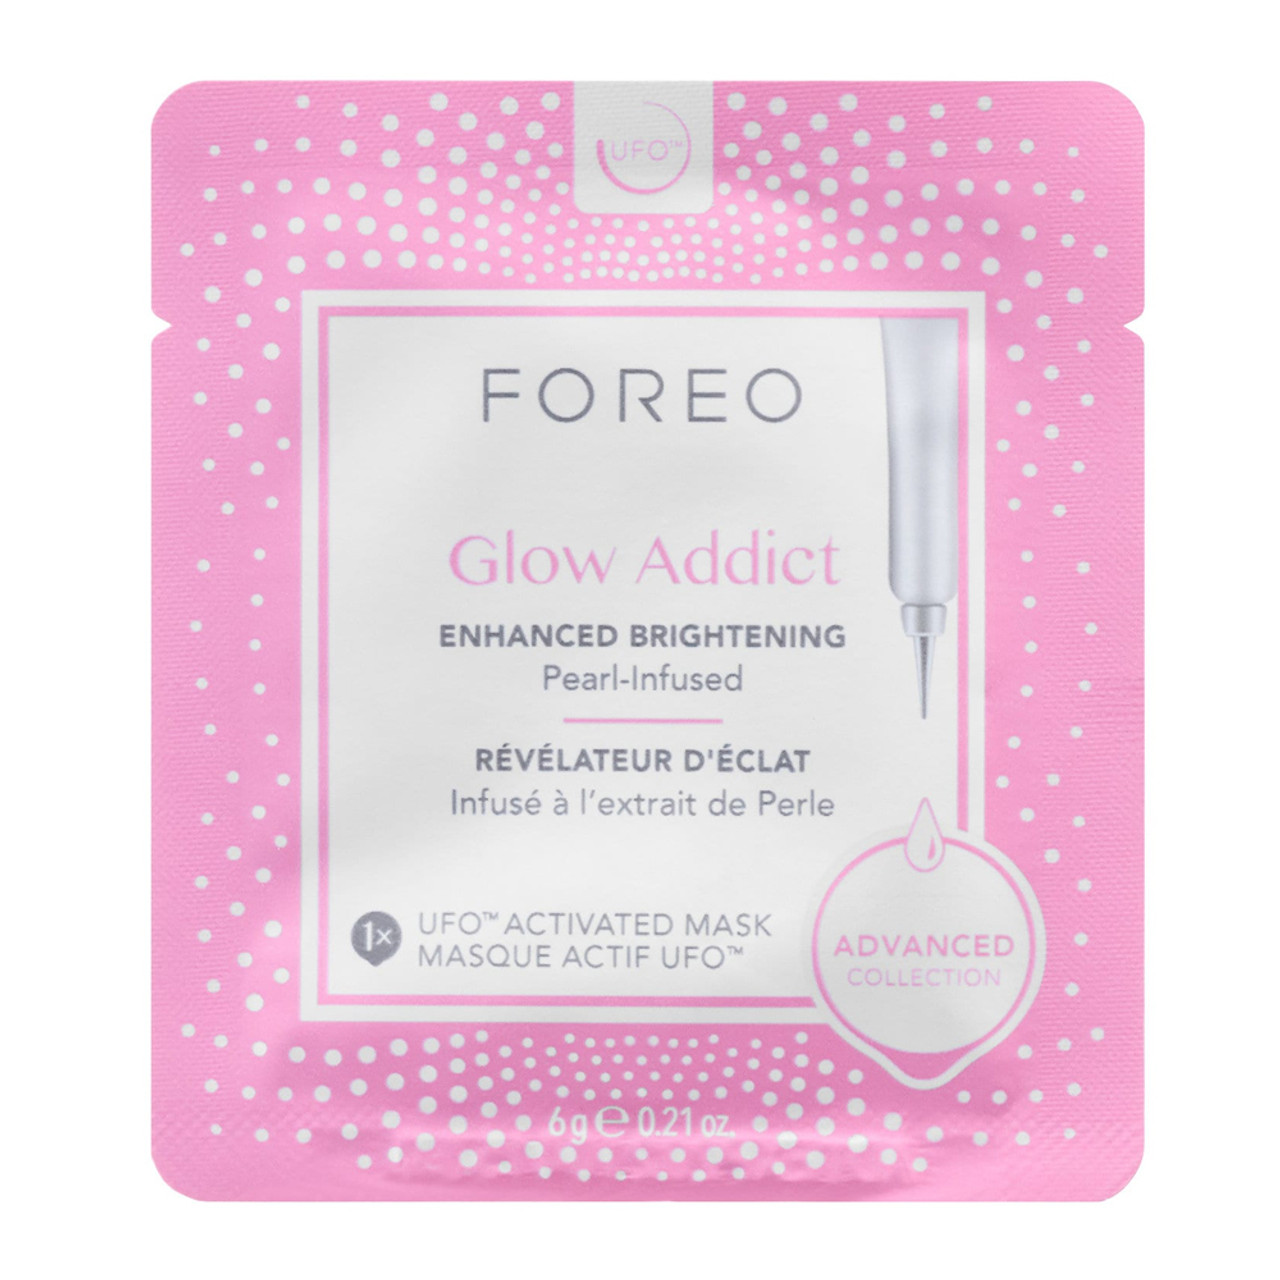 Foreo UFO Activated Masks - Glow Addict (6-Pk)